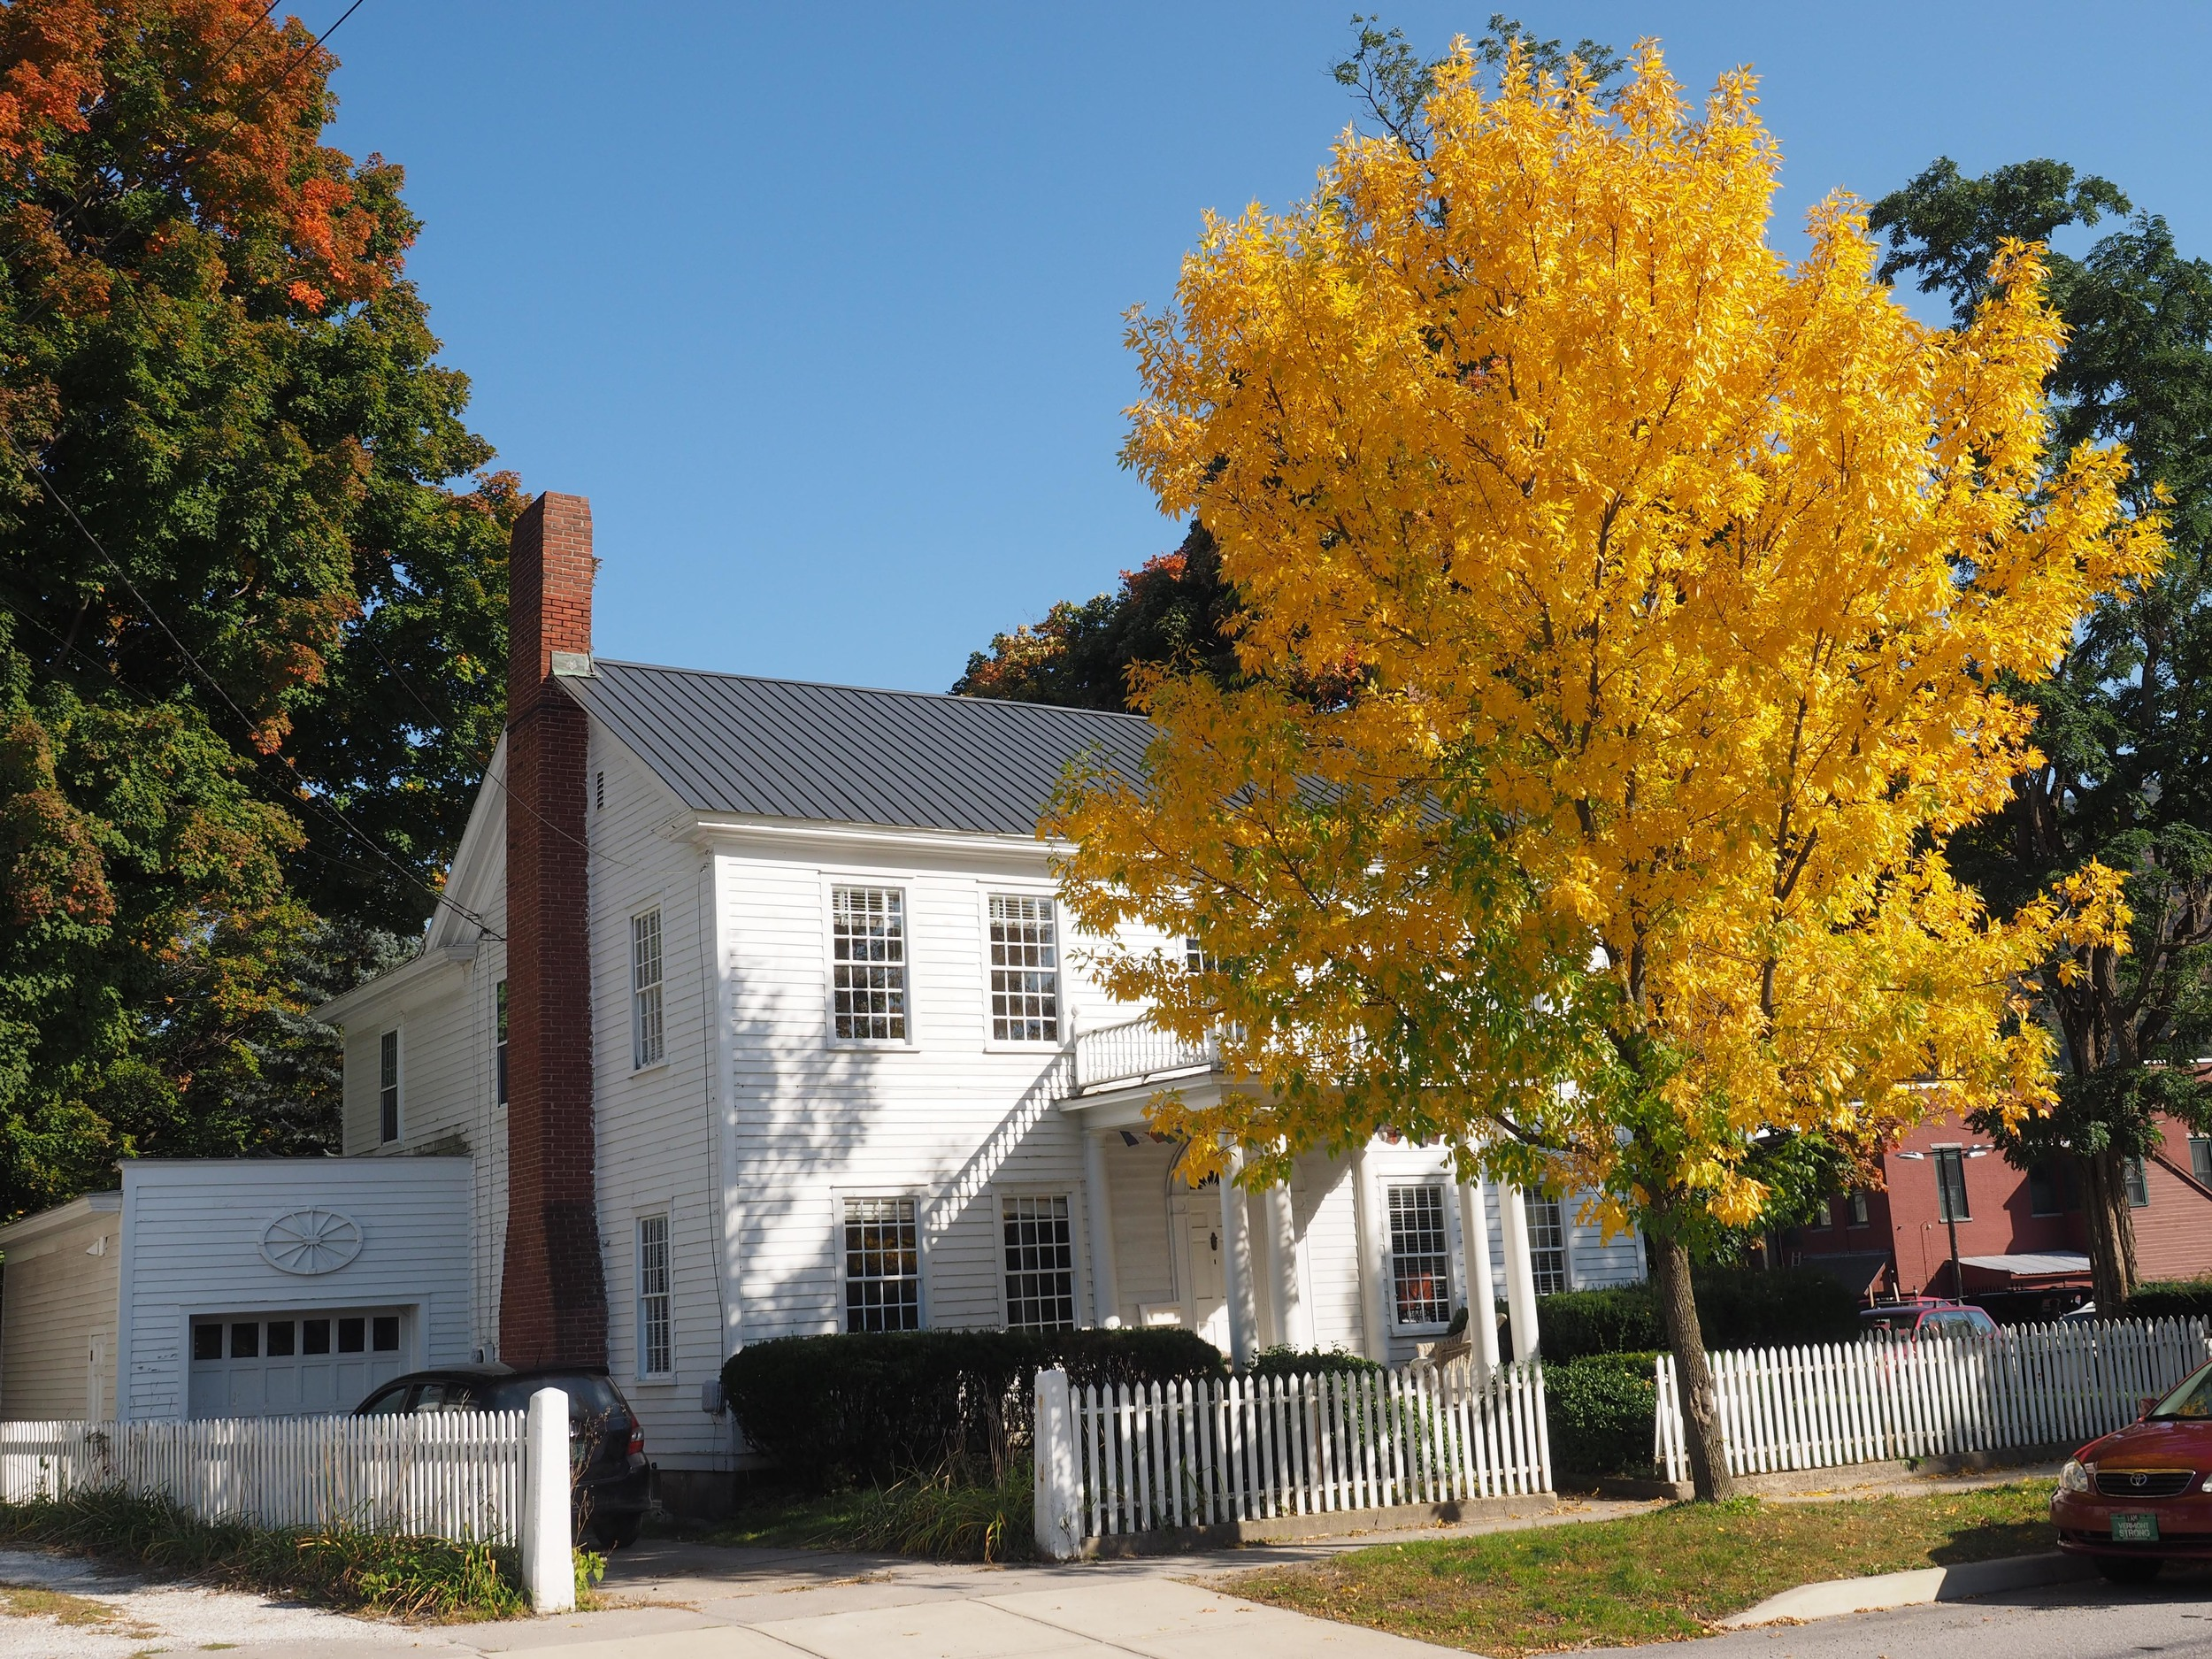 Historic 8 North Street is one of the oldest houses in Bristol, built in 1810.